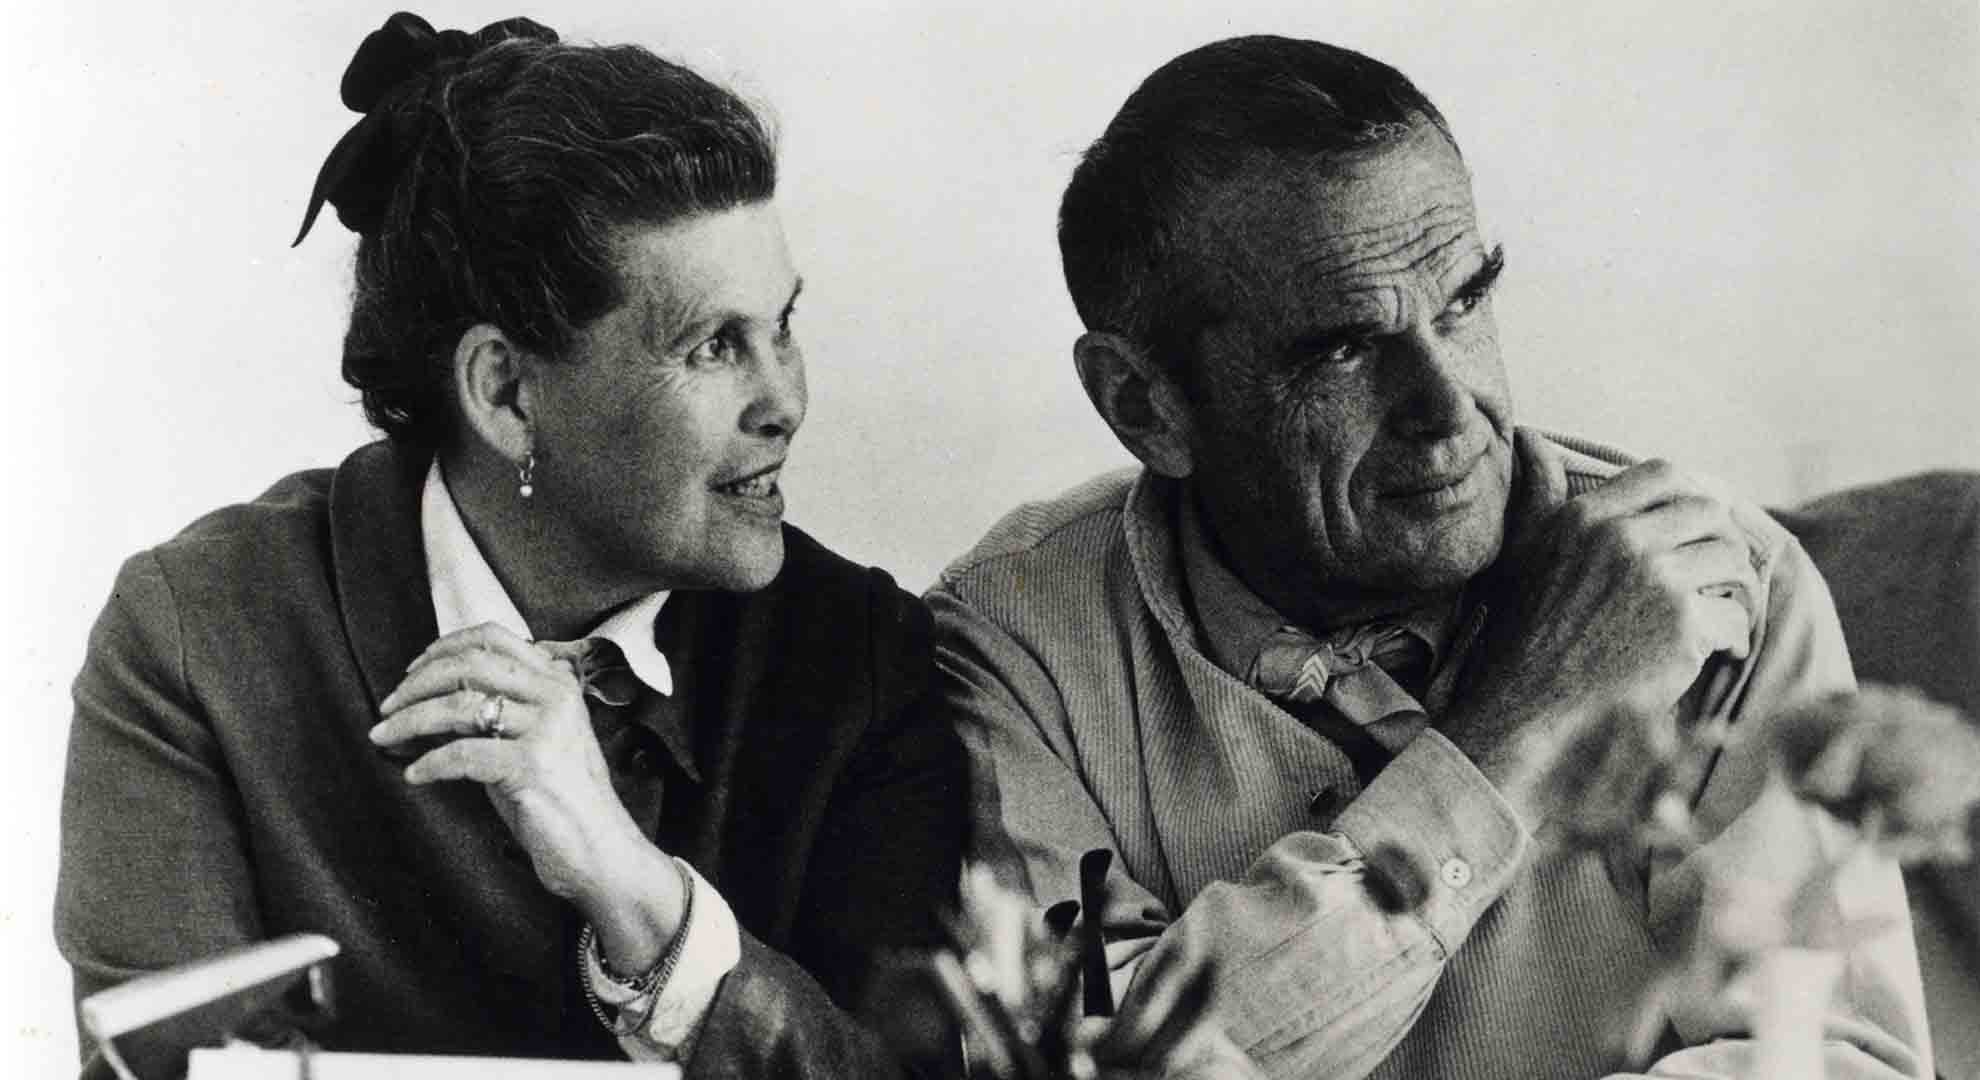 Charles and Ray Eames were teleworking pioneers and their example of modern nomadism has persisted far into the future